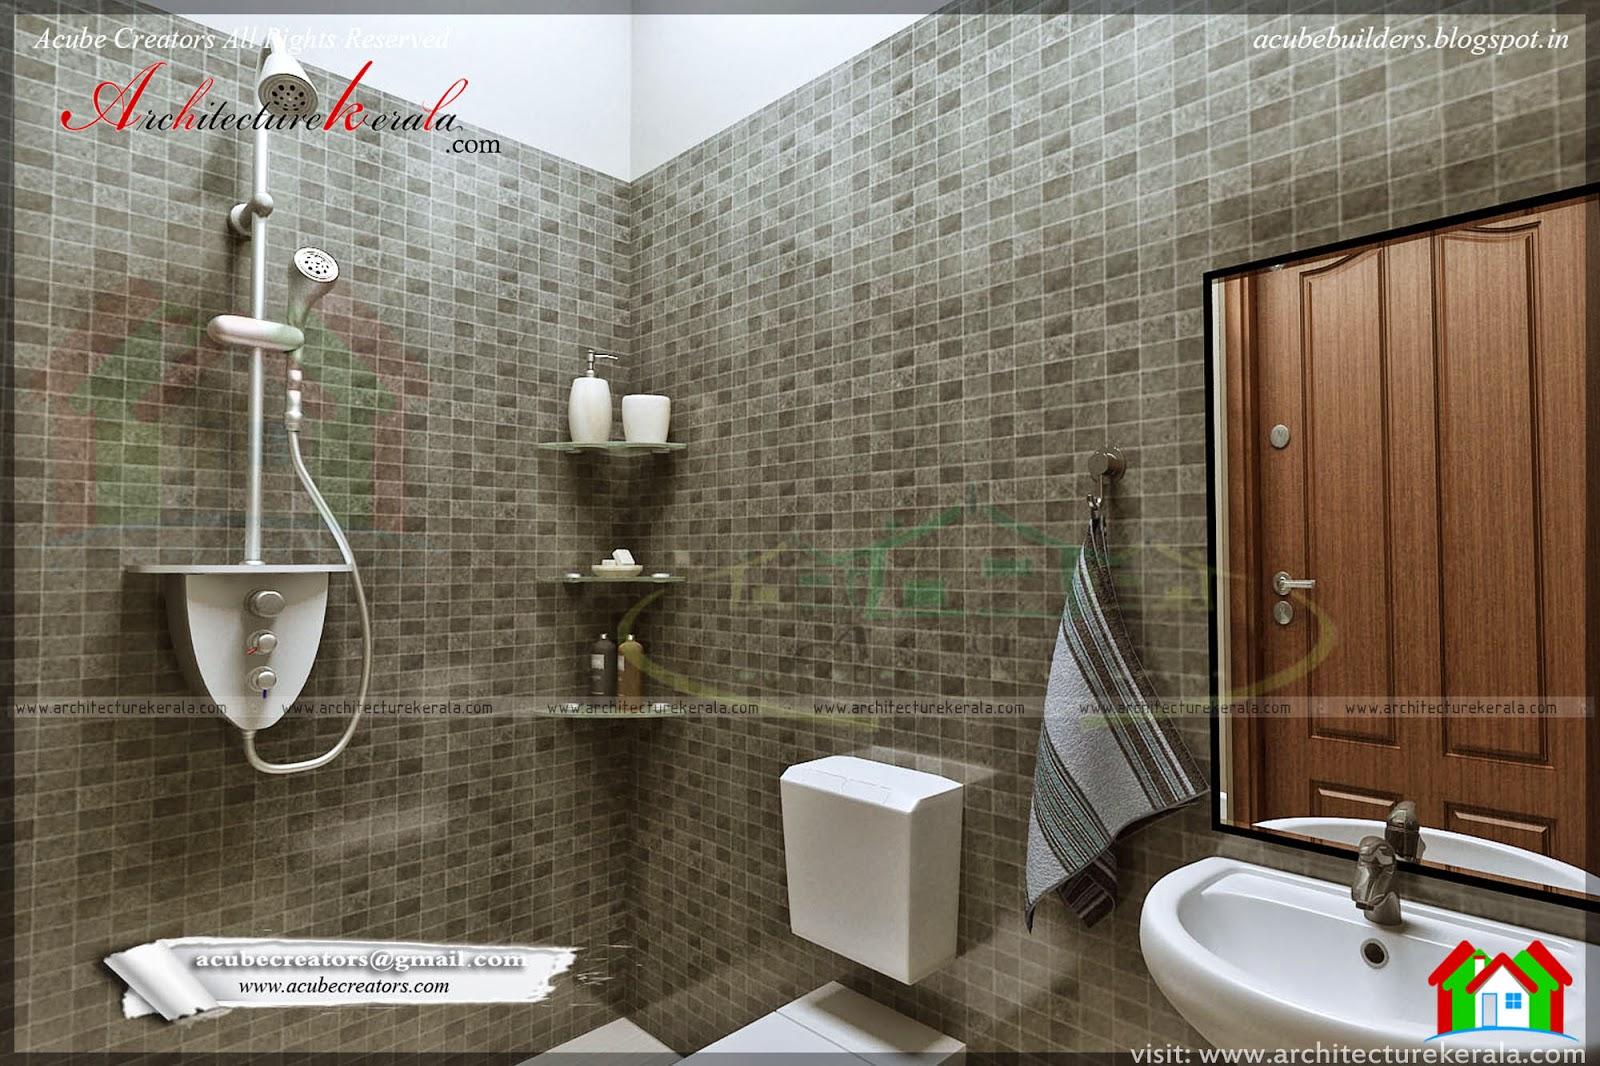 Bathroom interior design architecture kerala Bathroom tiles design in kerala